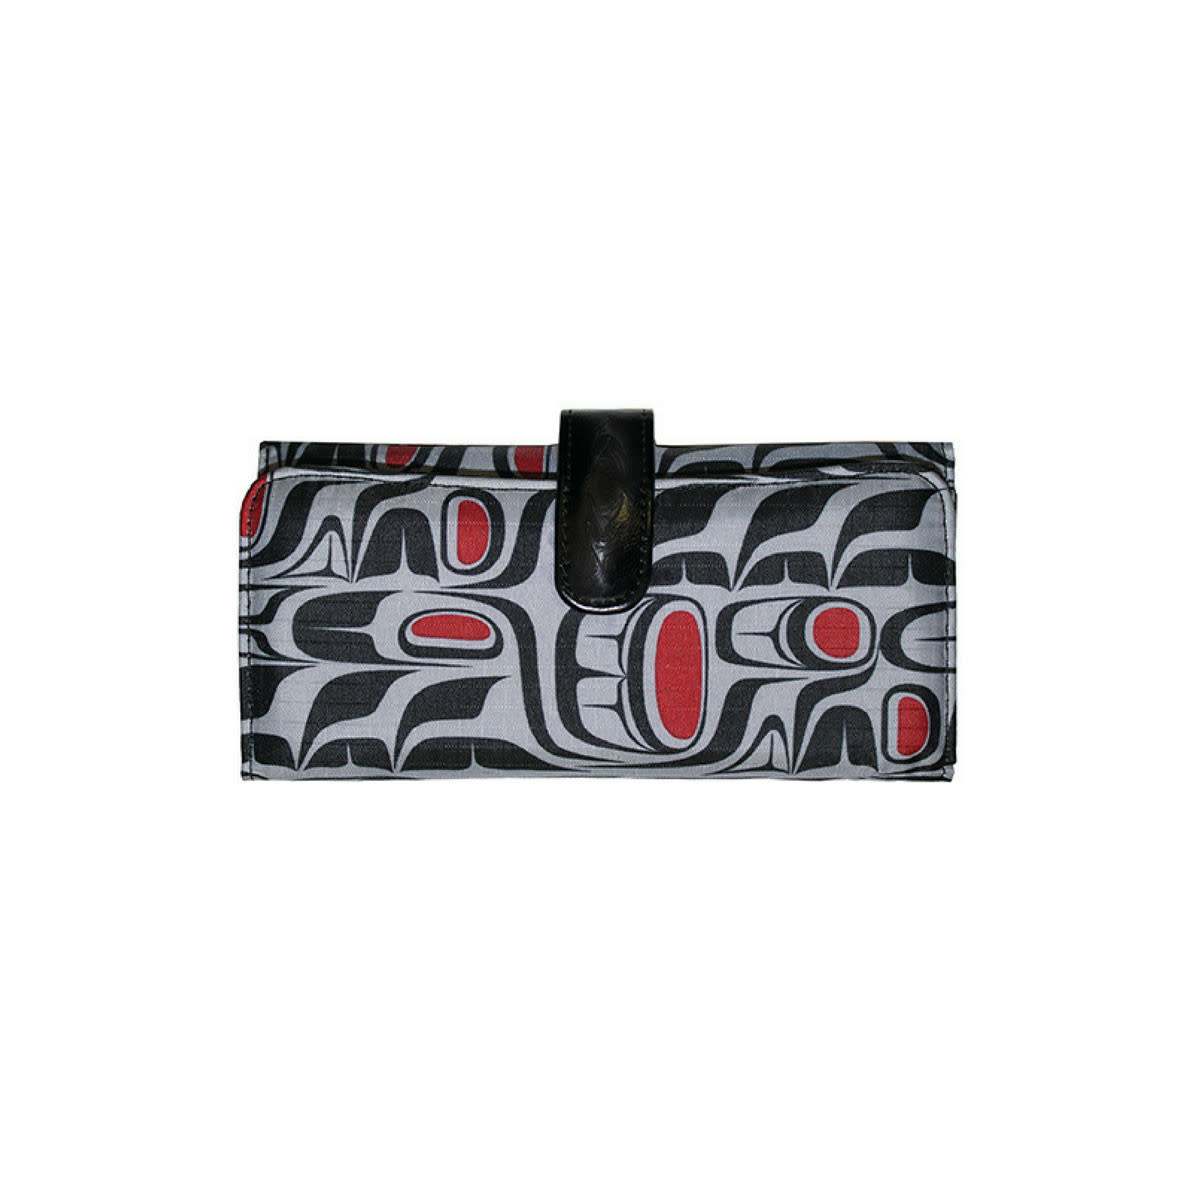 Wallet-Pacific Formlines-Paul Windsor-1